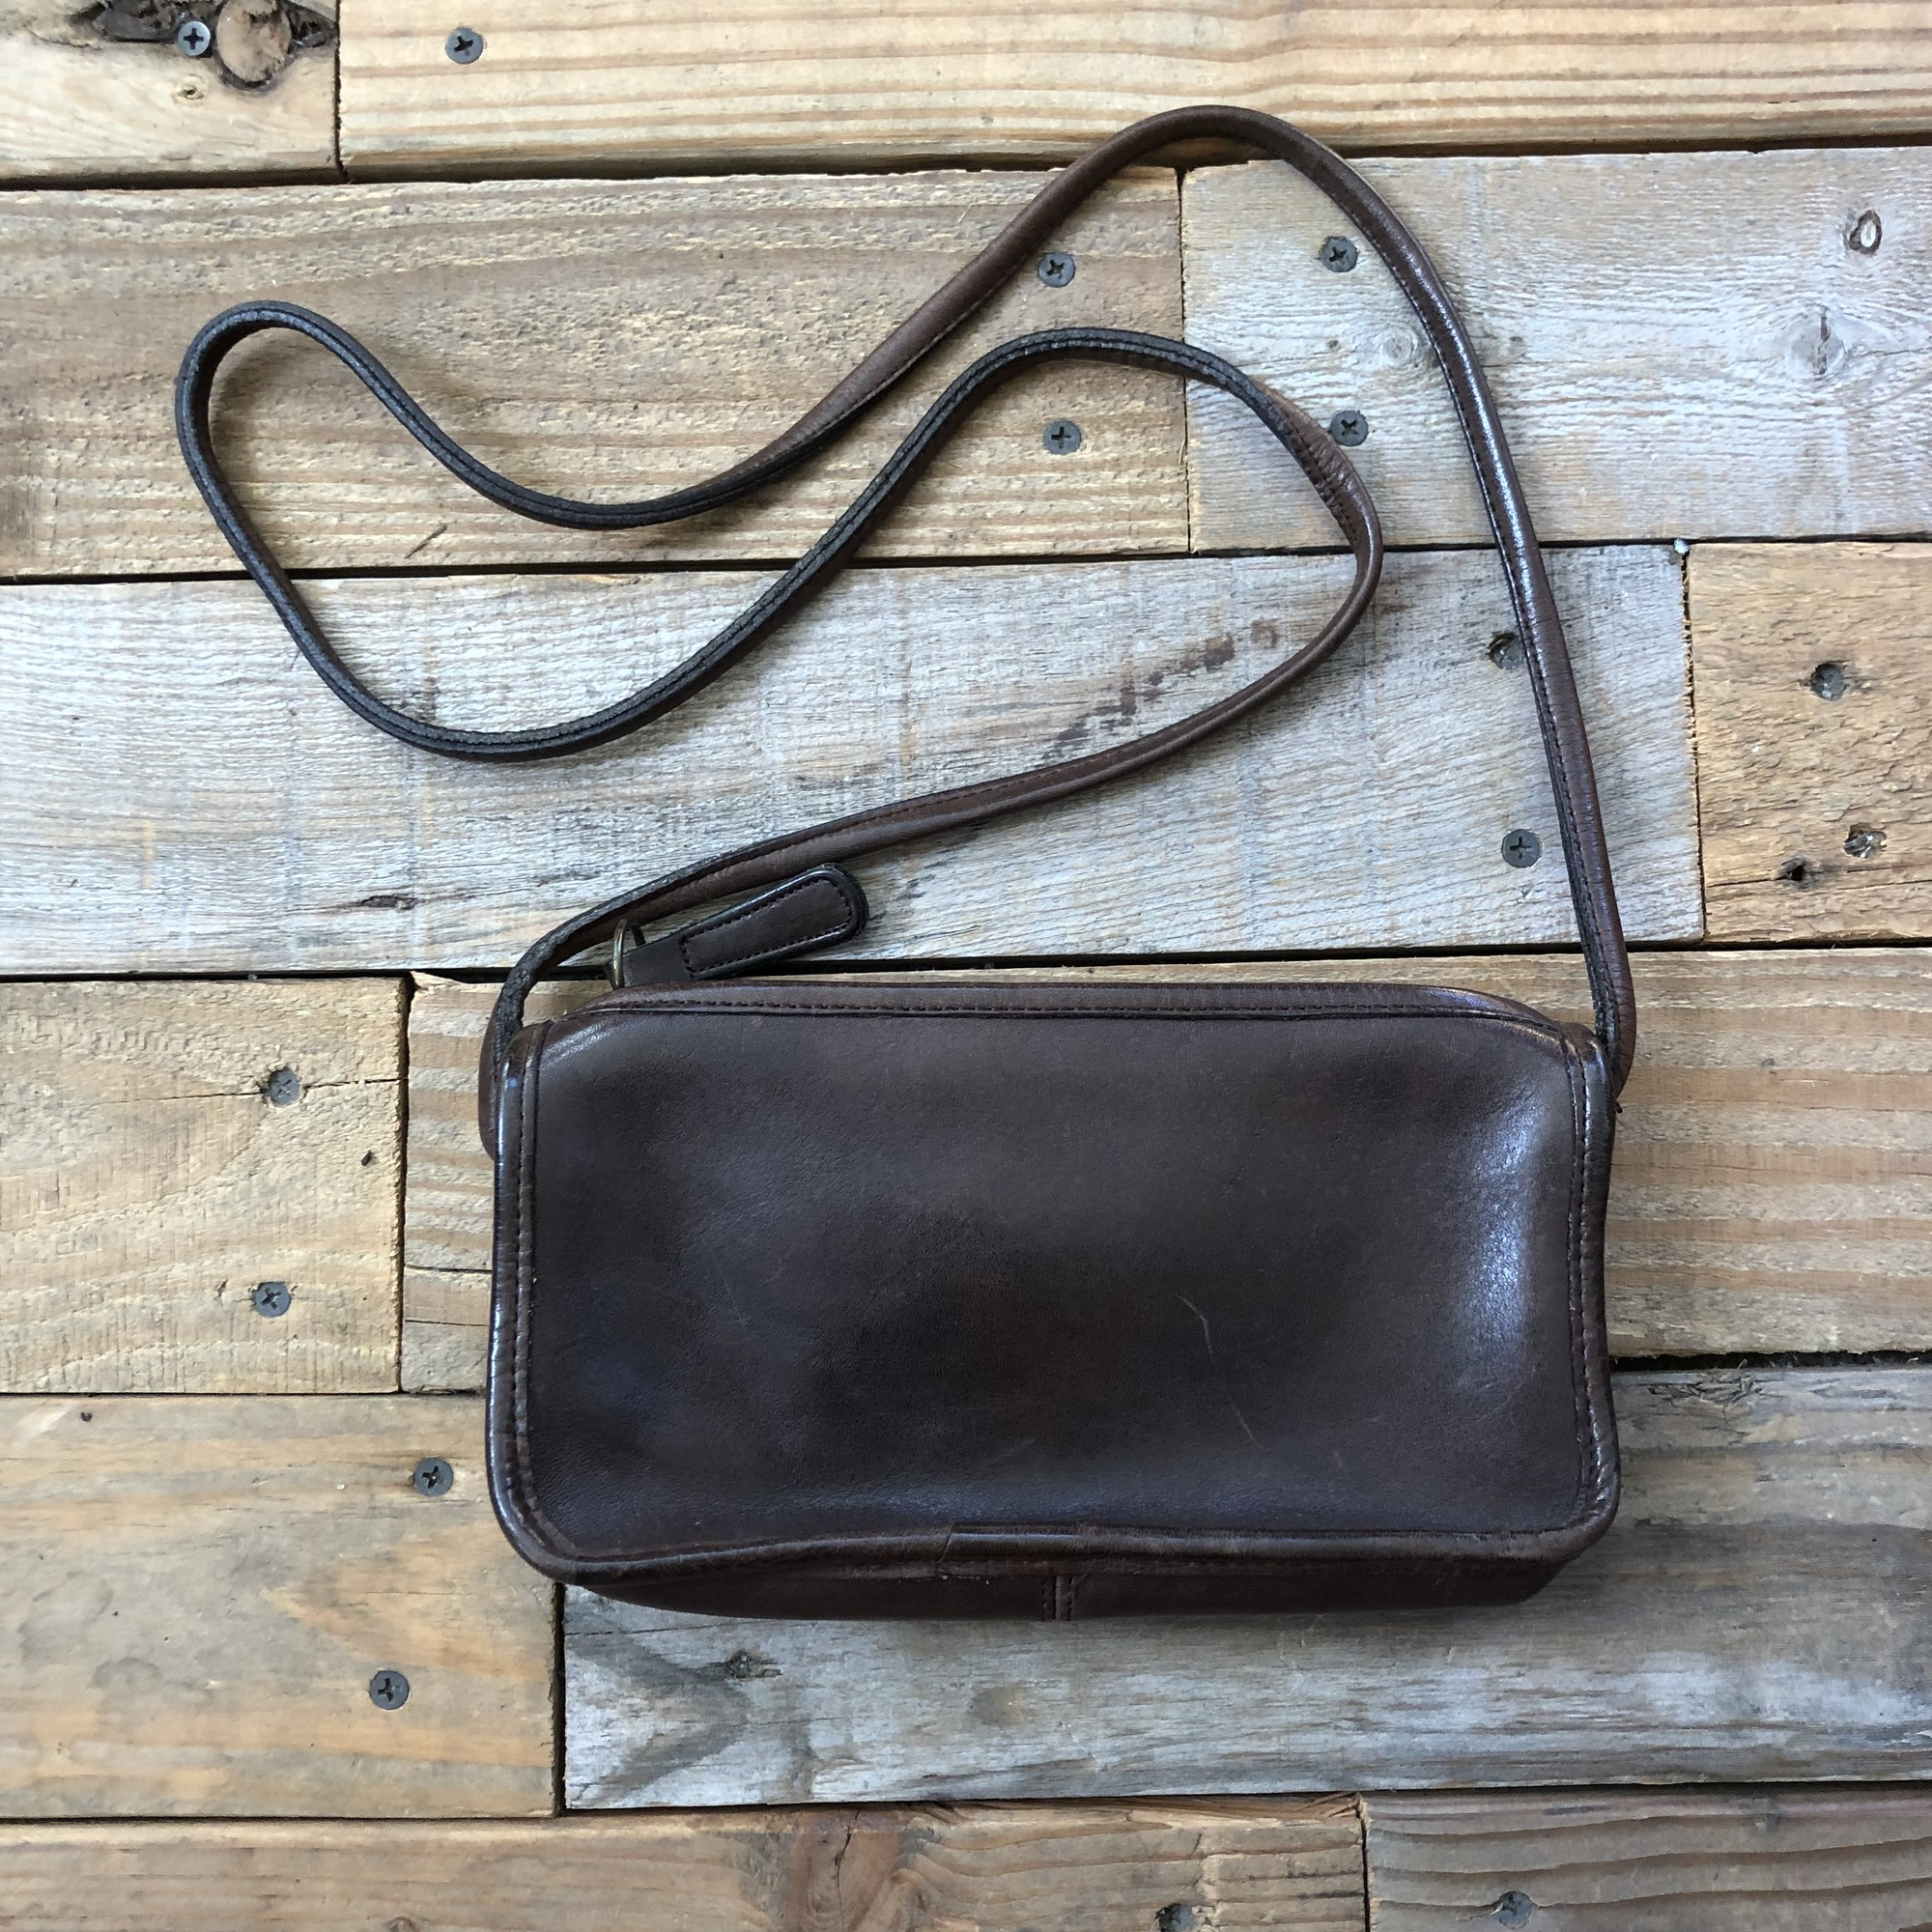 "Vintage Coach Leather Crossbody Bag<br /> Color: Brown<br /> Size: 9"" x 5"" x 2""<br /> <br /> Features:<br /> -zippered closure<br /> -21"" crossbody strap<br /> -interior pocket<br /> *shows signs of wear from age (surface scratches on leather)"